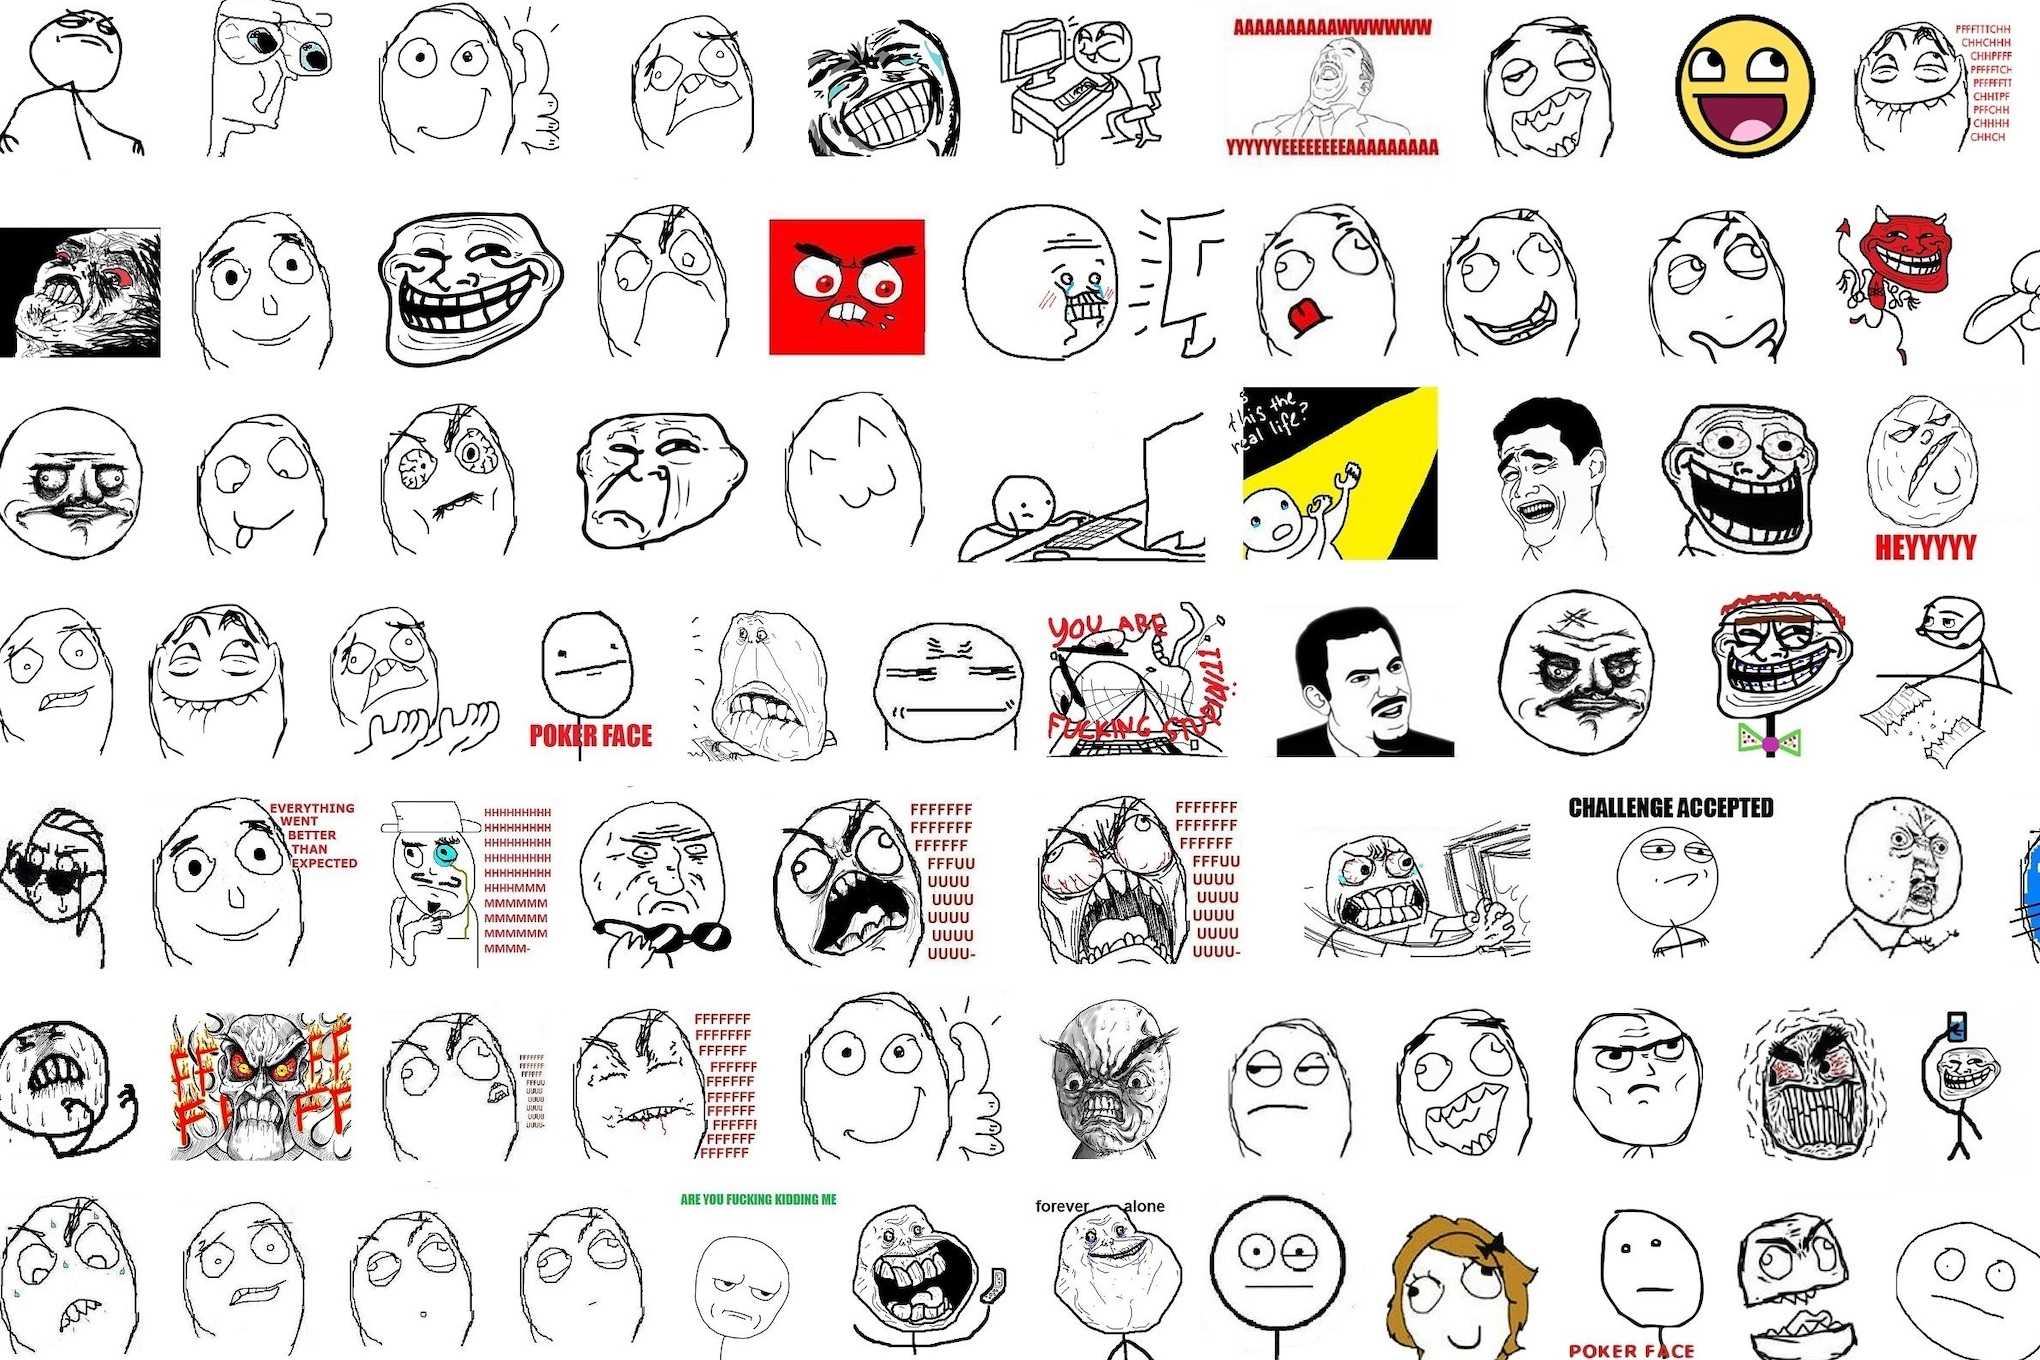 There are still people making rage comics in 2019, despite everything